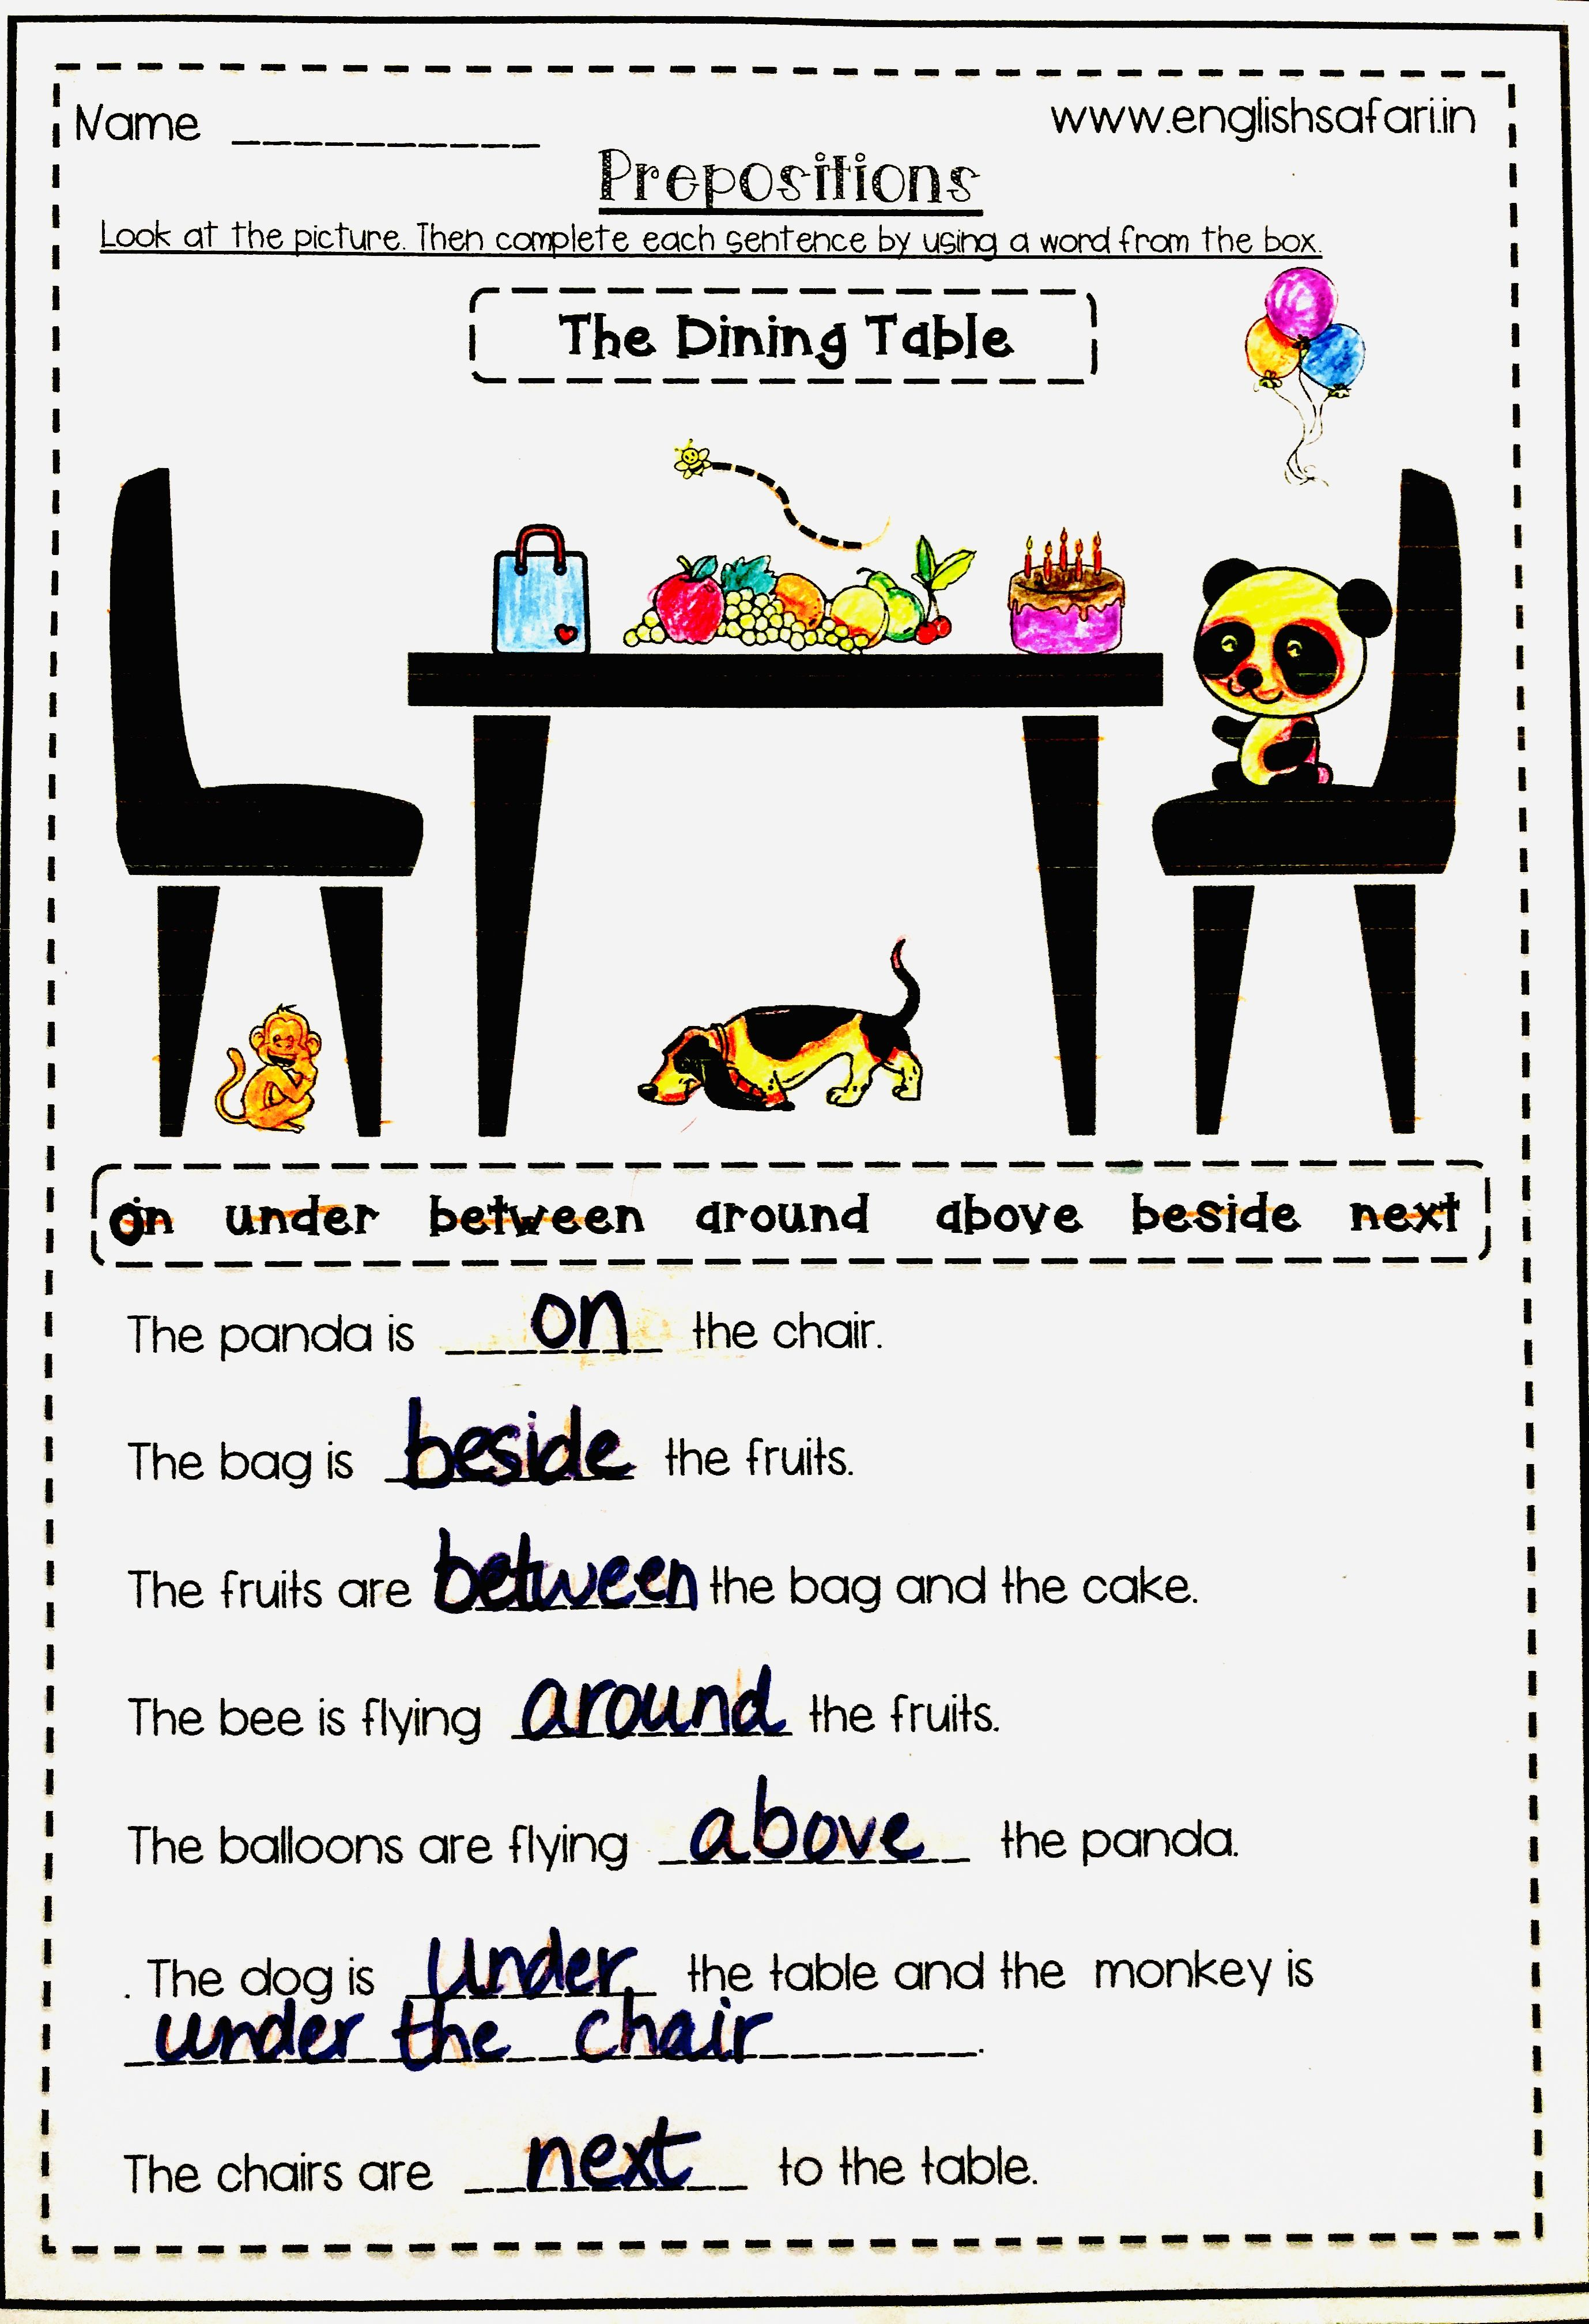 hight resolution of Preposition Worksheet For G1   Printable Worksheets and Activities for  Teachers